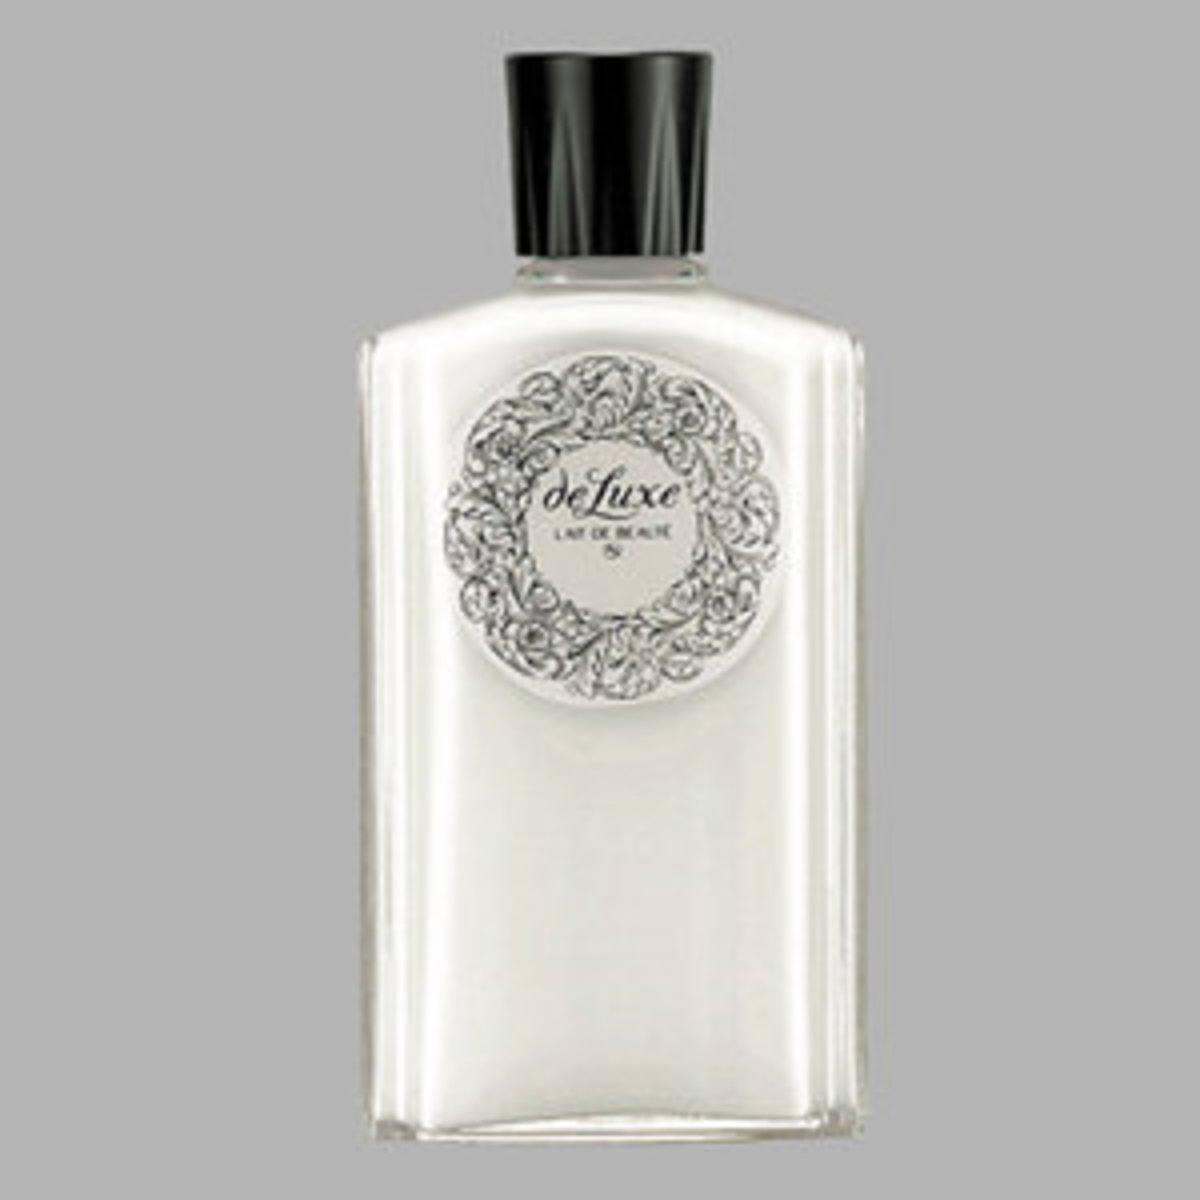 deluxe lotion (for oily skin) 150ml